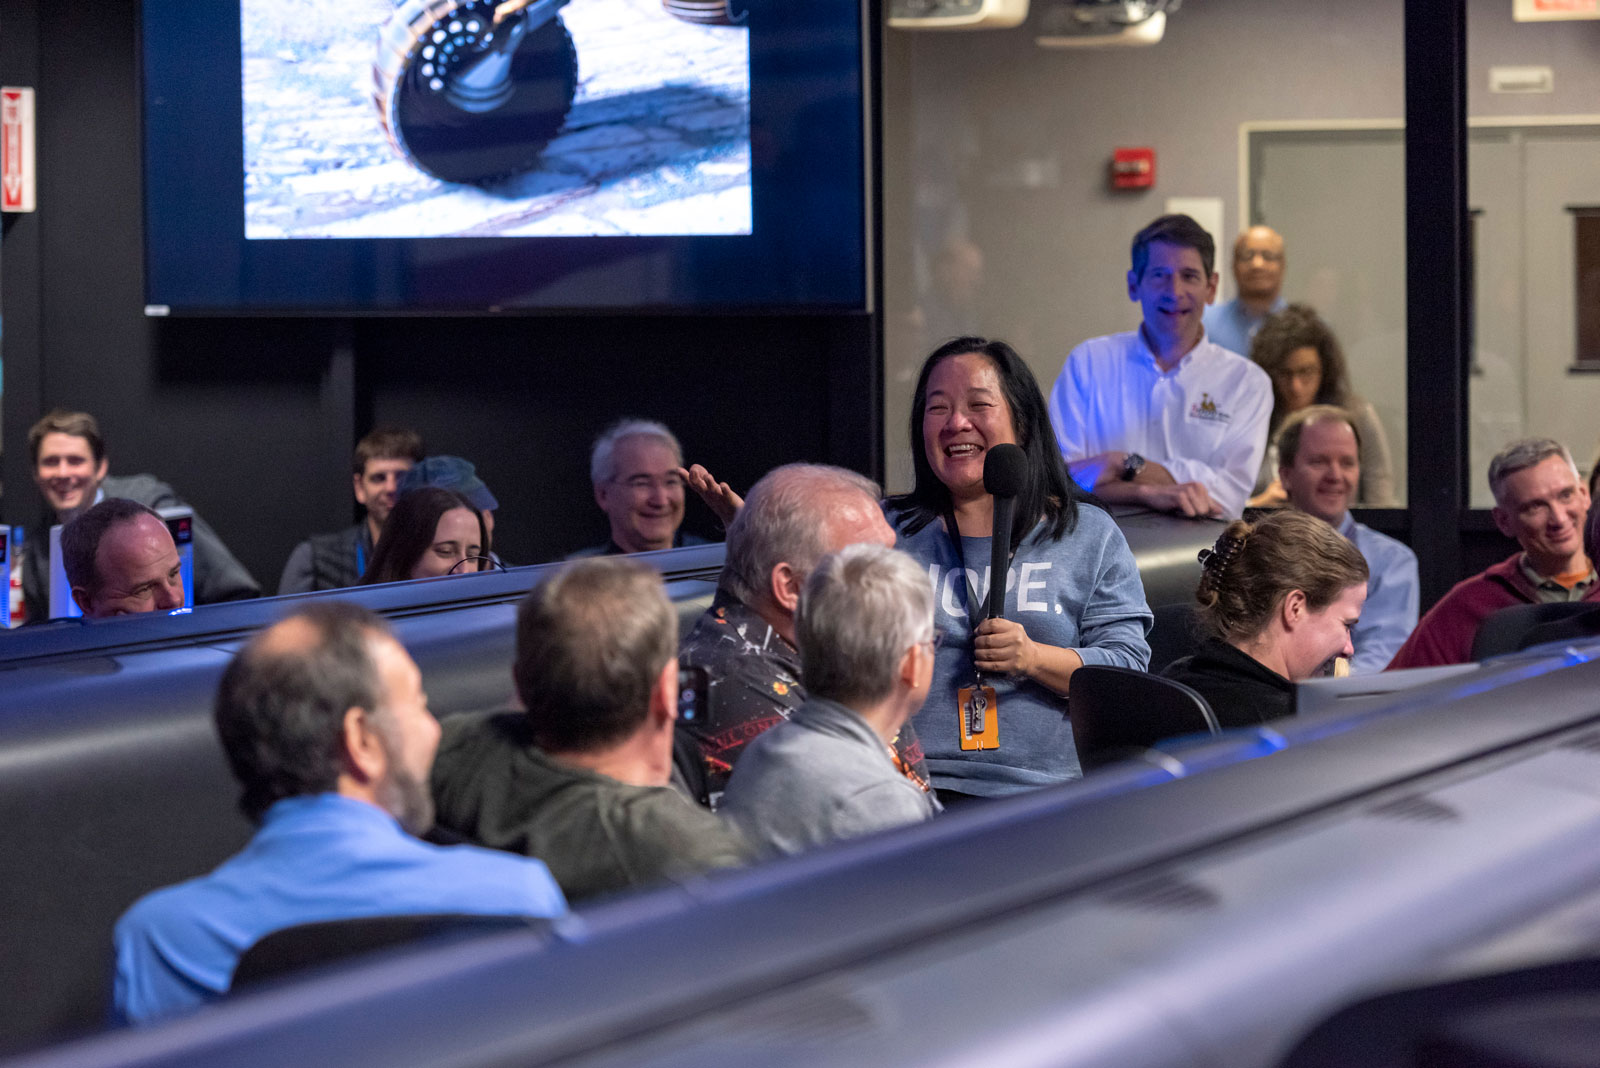 Cindy Oda stood up to share her experience working with NASA's Opportunity rover during a team meeting in Mission Control at NASA's Jet Propulsion Laboratory in Pasadena, California.